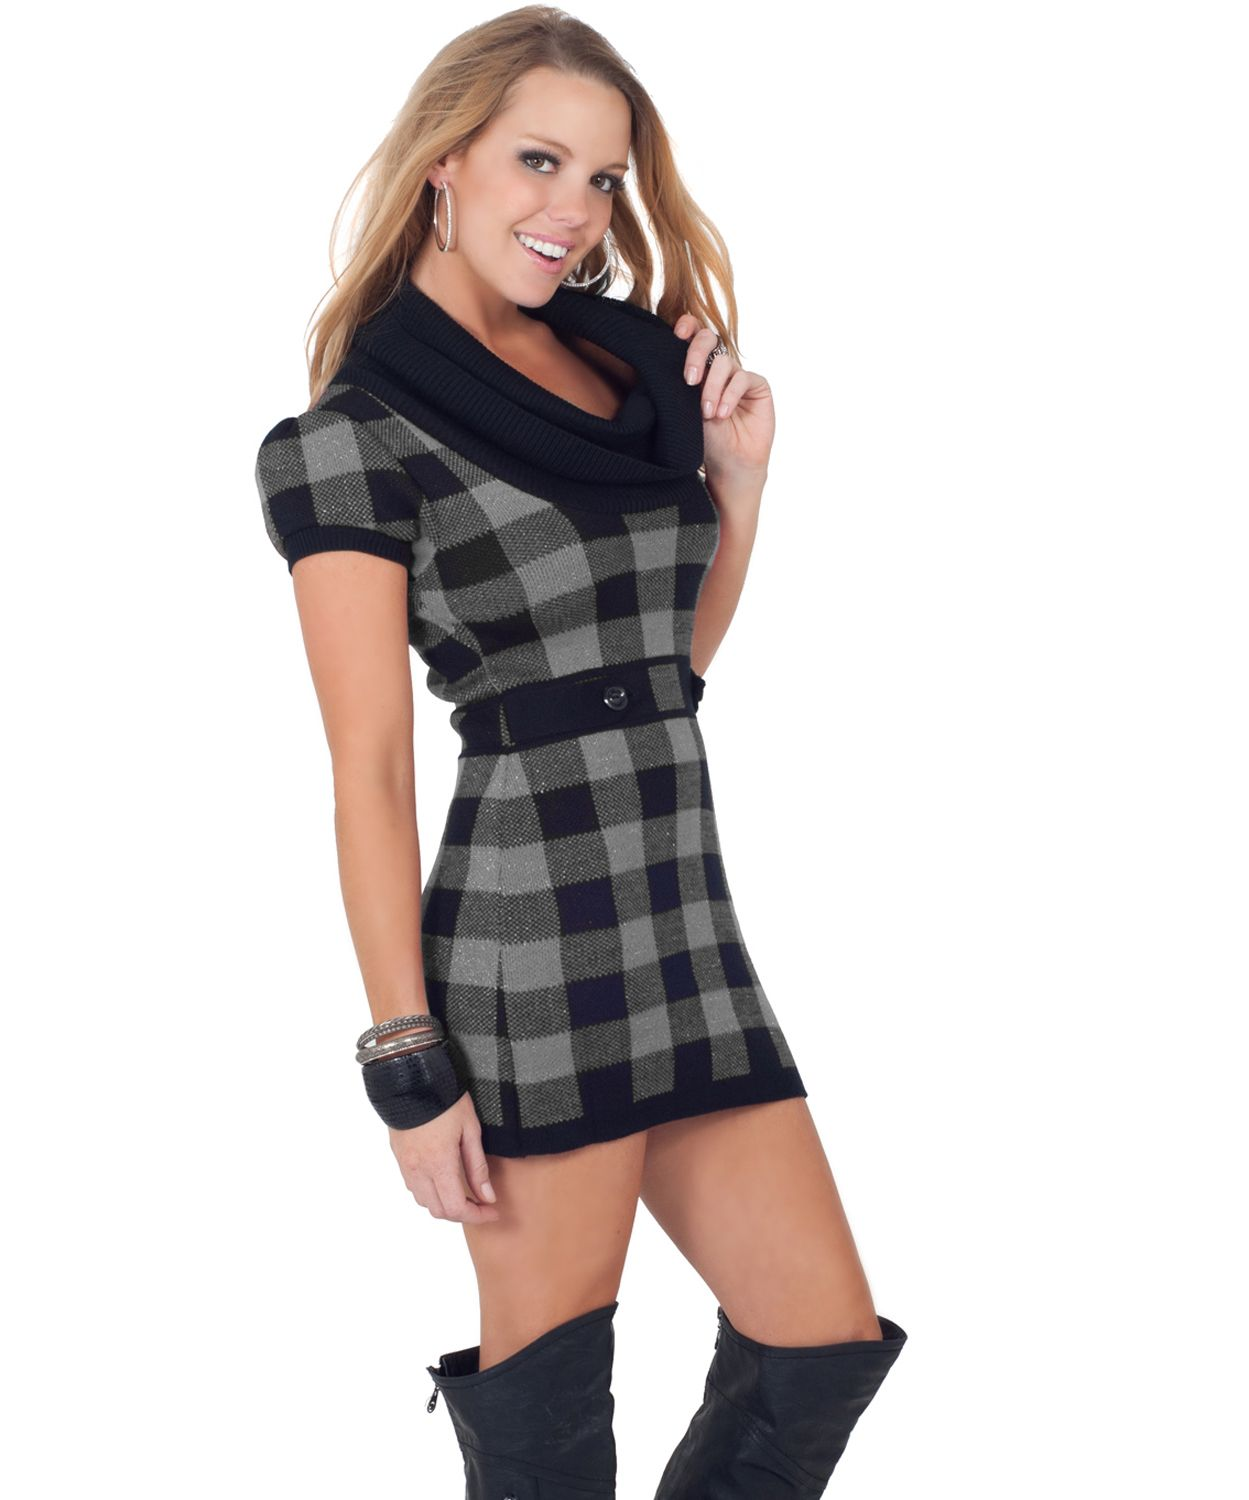 short-sleeve-cowl-neck-fitted-warm-winter-plaid-sweater-mini-dress ...